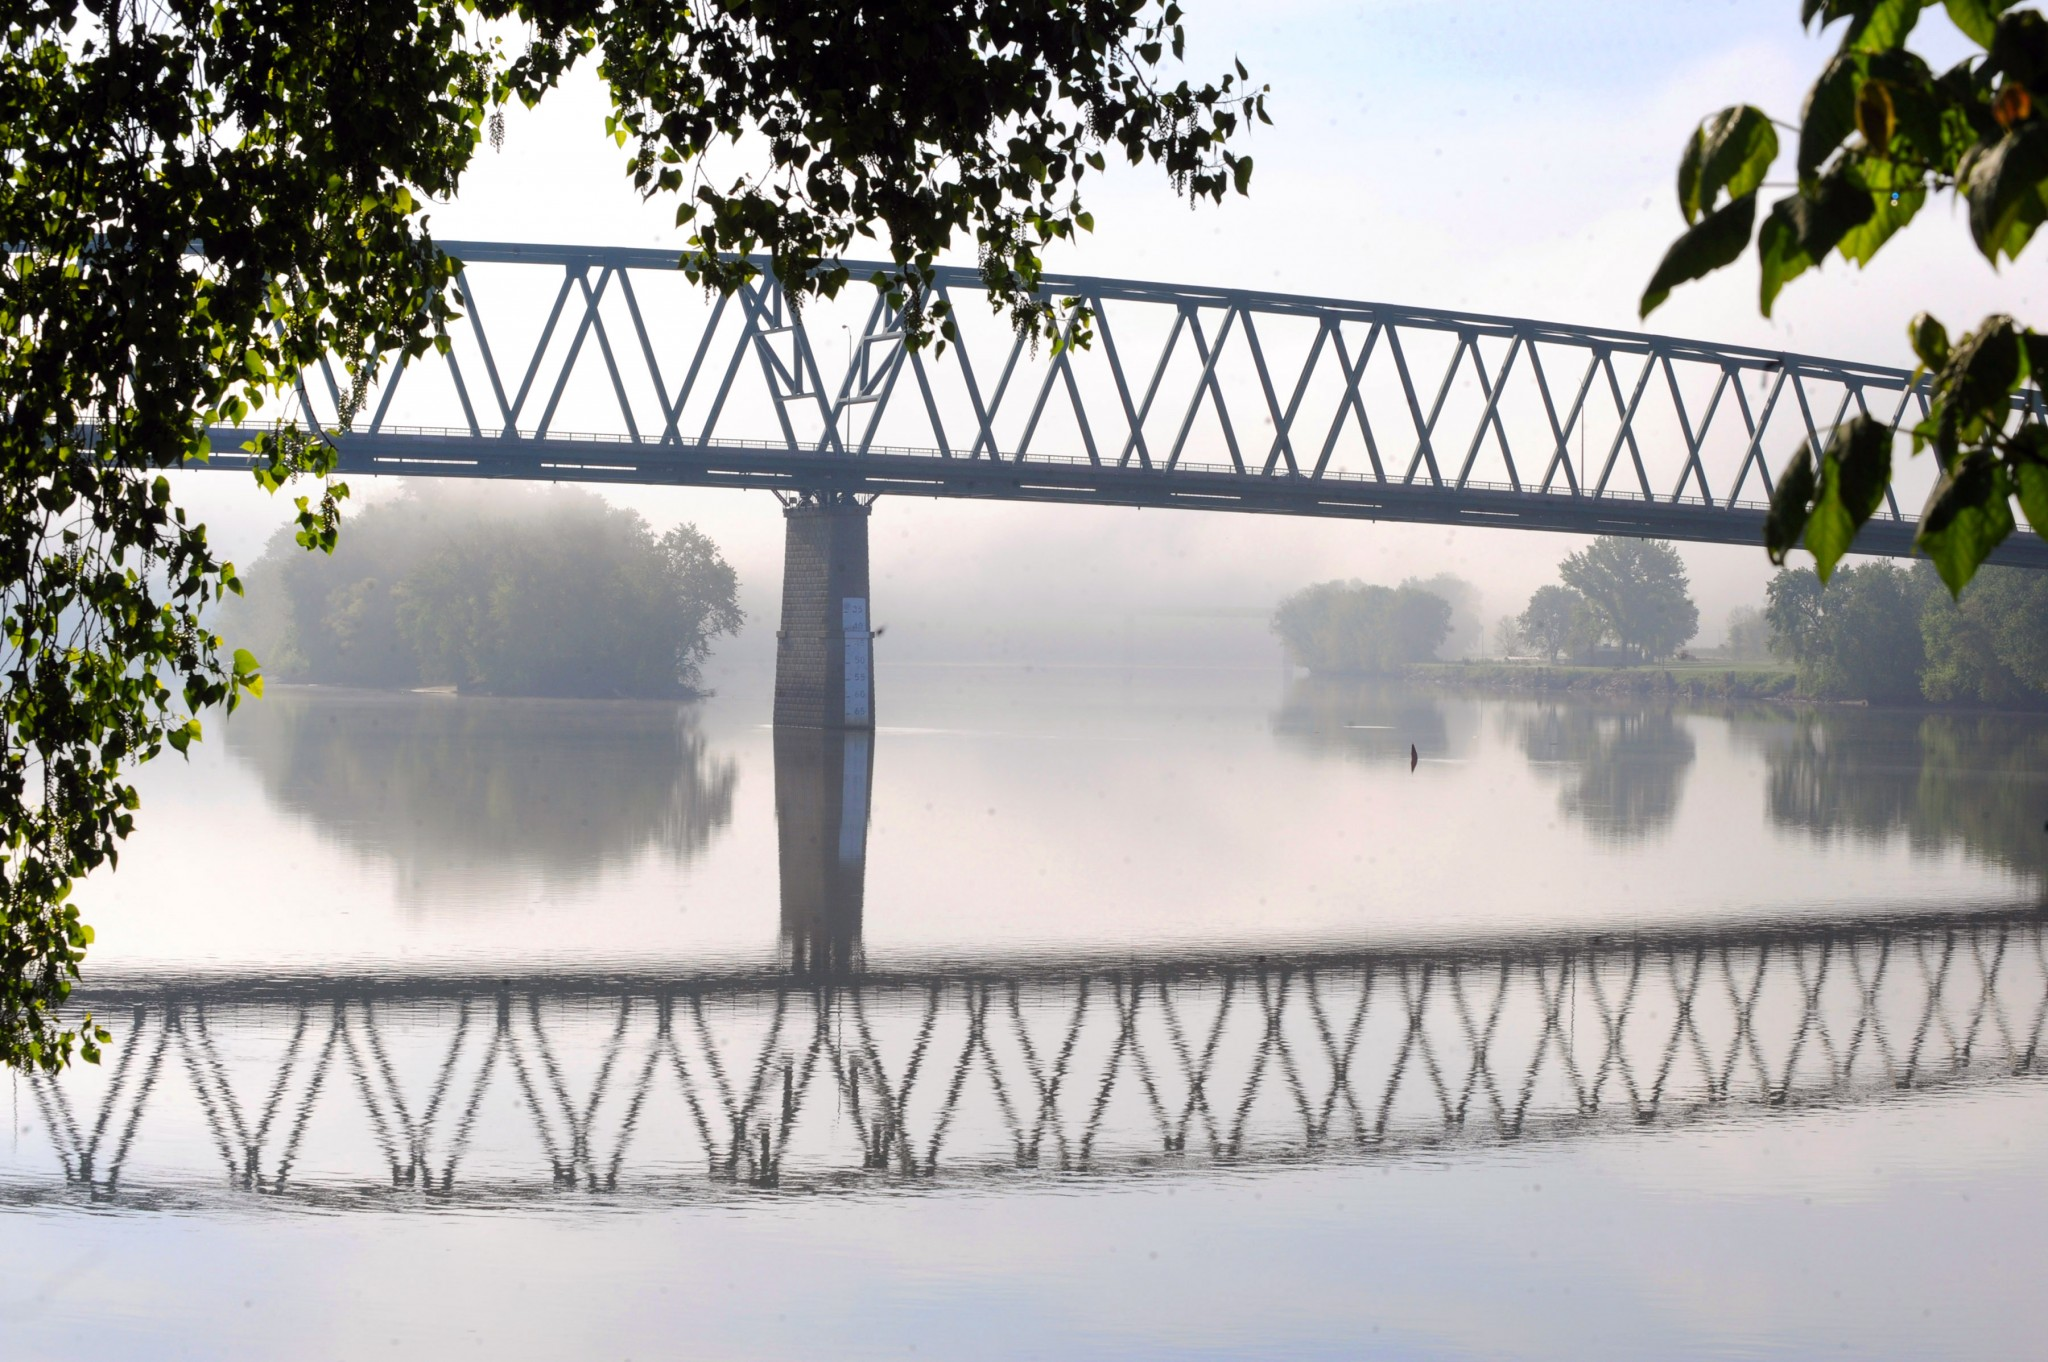 The Marietta-Williamstown bridge spans the Ohio River, affording a view of the river as well as some of the islands. (Photo by Art Weber)